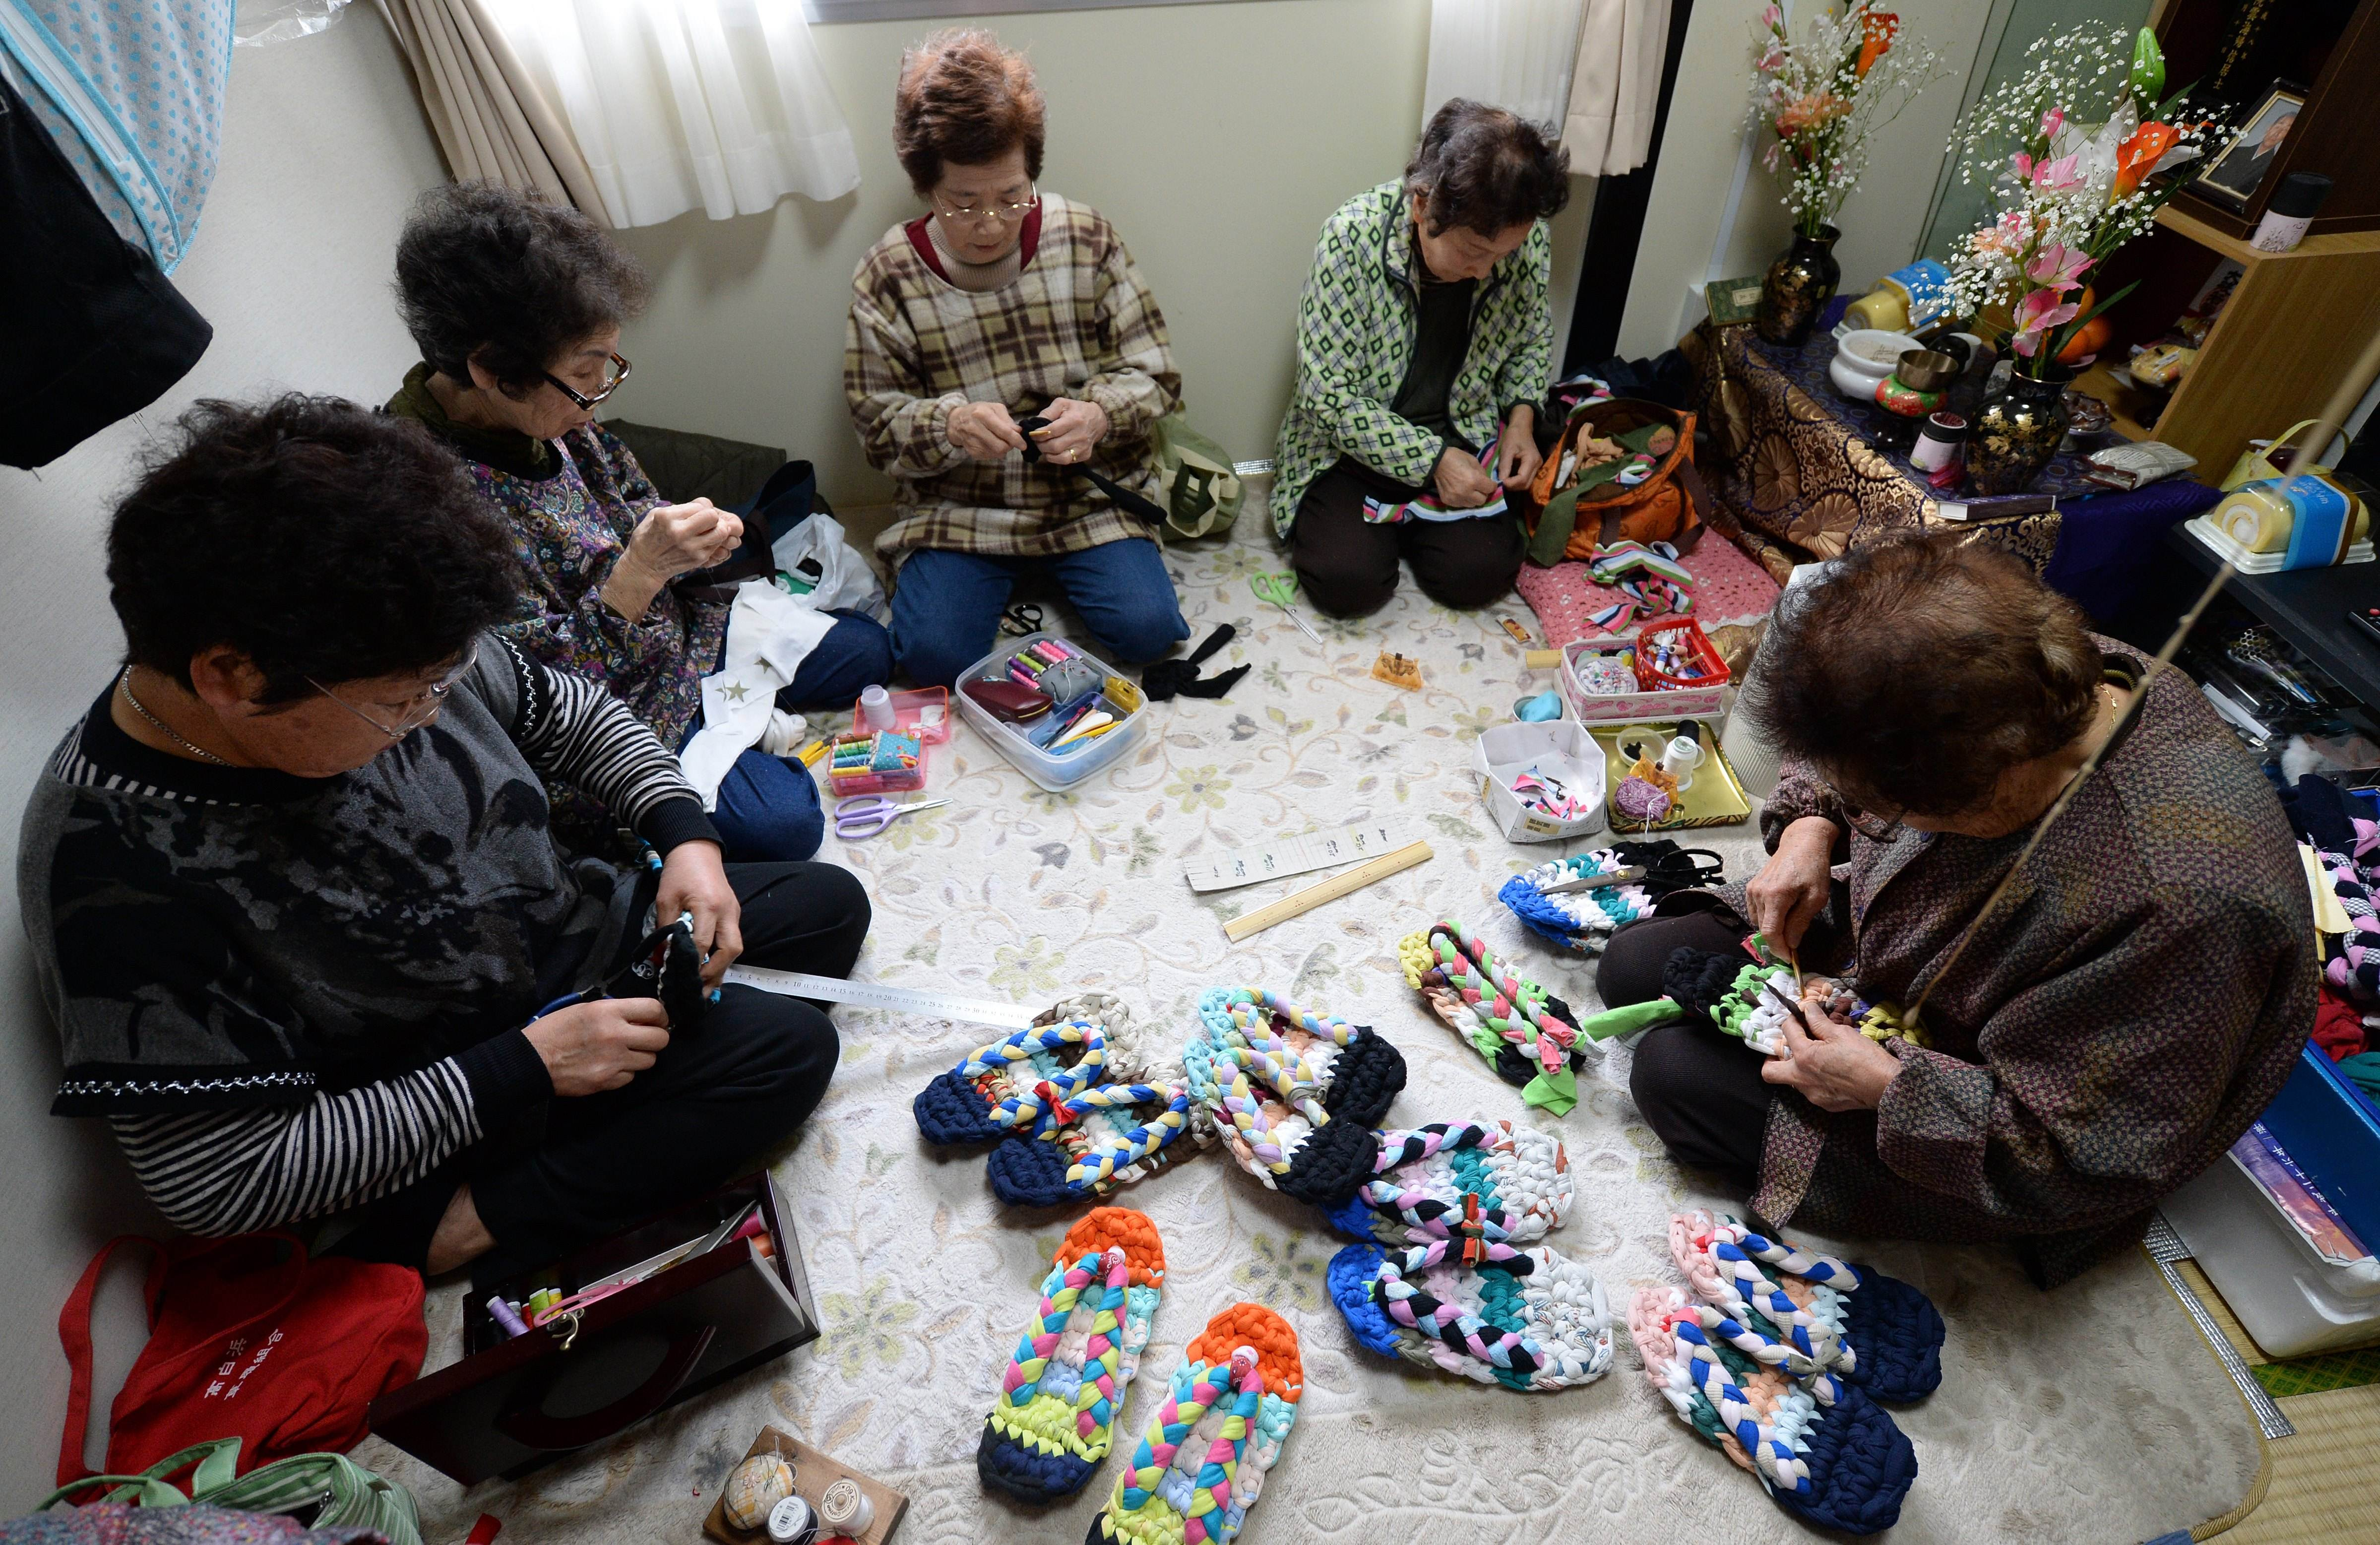 Elderly women making sandals from used T-shirts in a small room of a temporary housing complex in Ishinomaki, Miyagi Prefecture, on March 3, 2014.